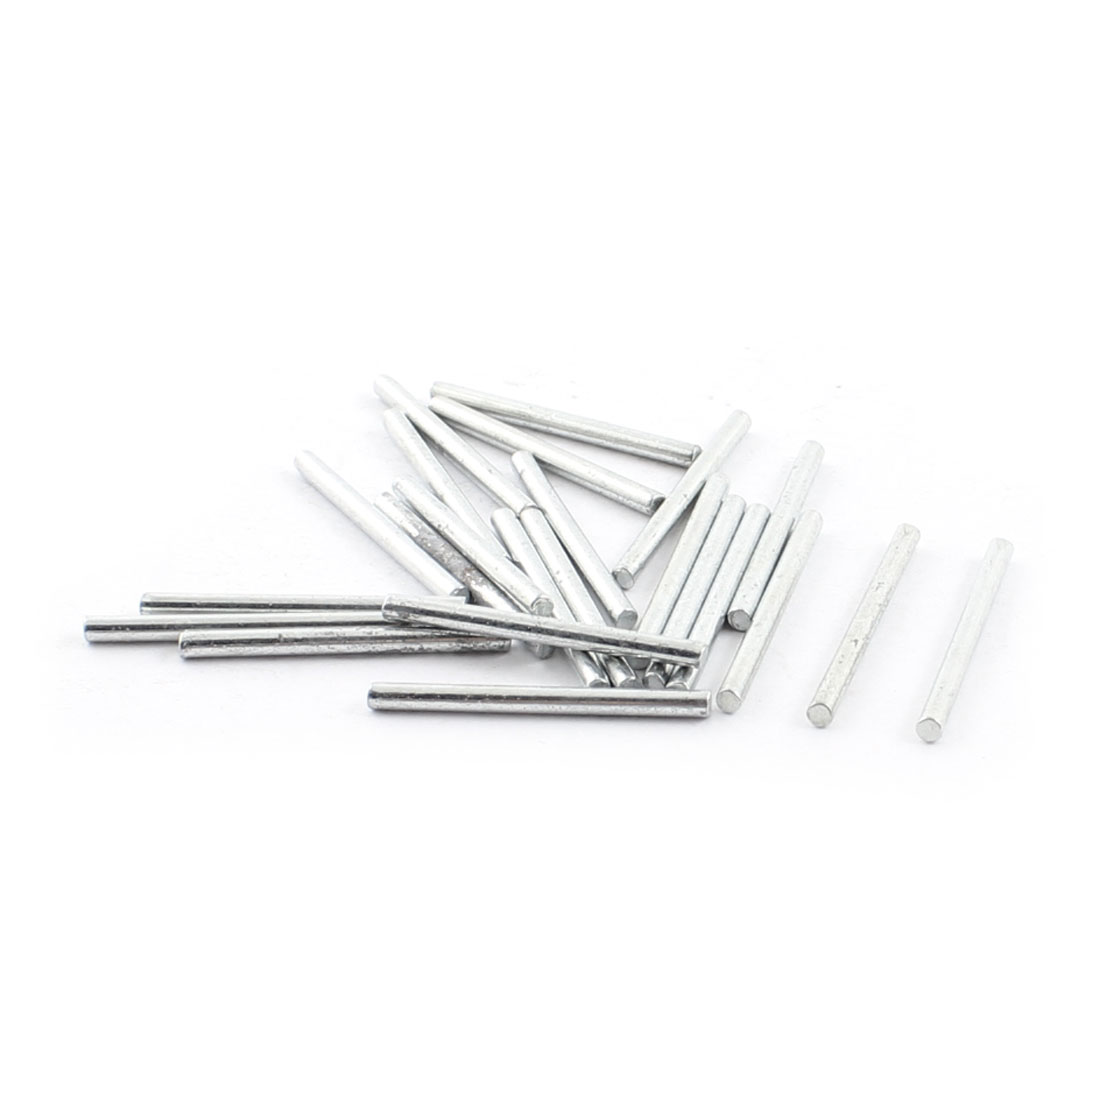 "23Pcs 2mm Diameter Stainless Steel Motion Axle Circular Round Rod Bar 1"" Long"